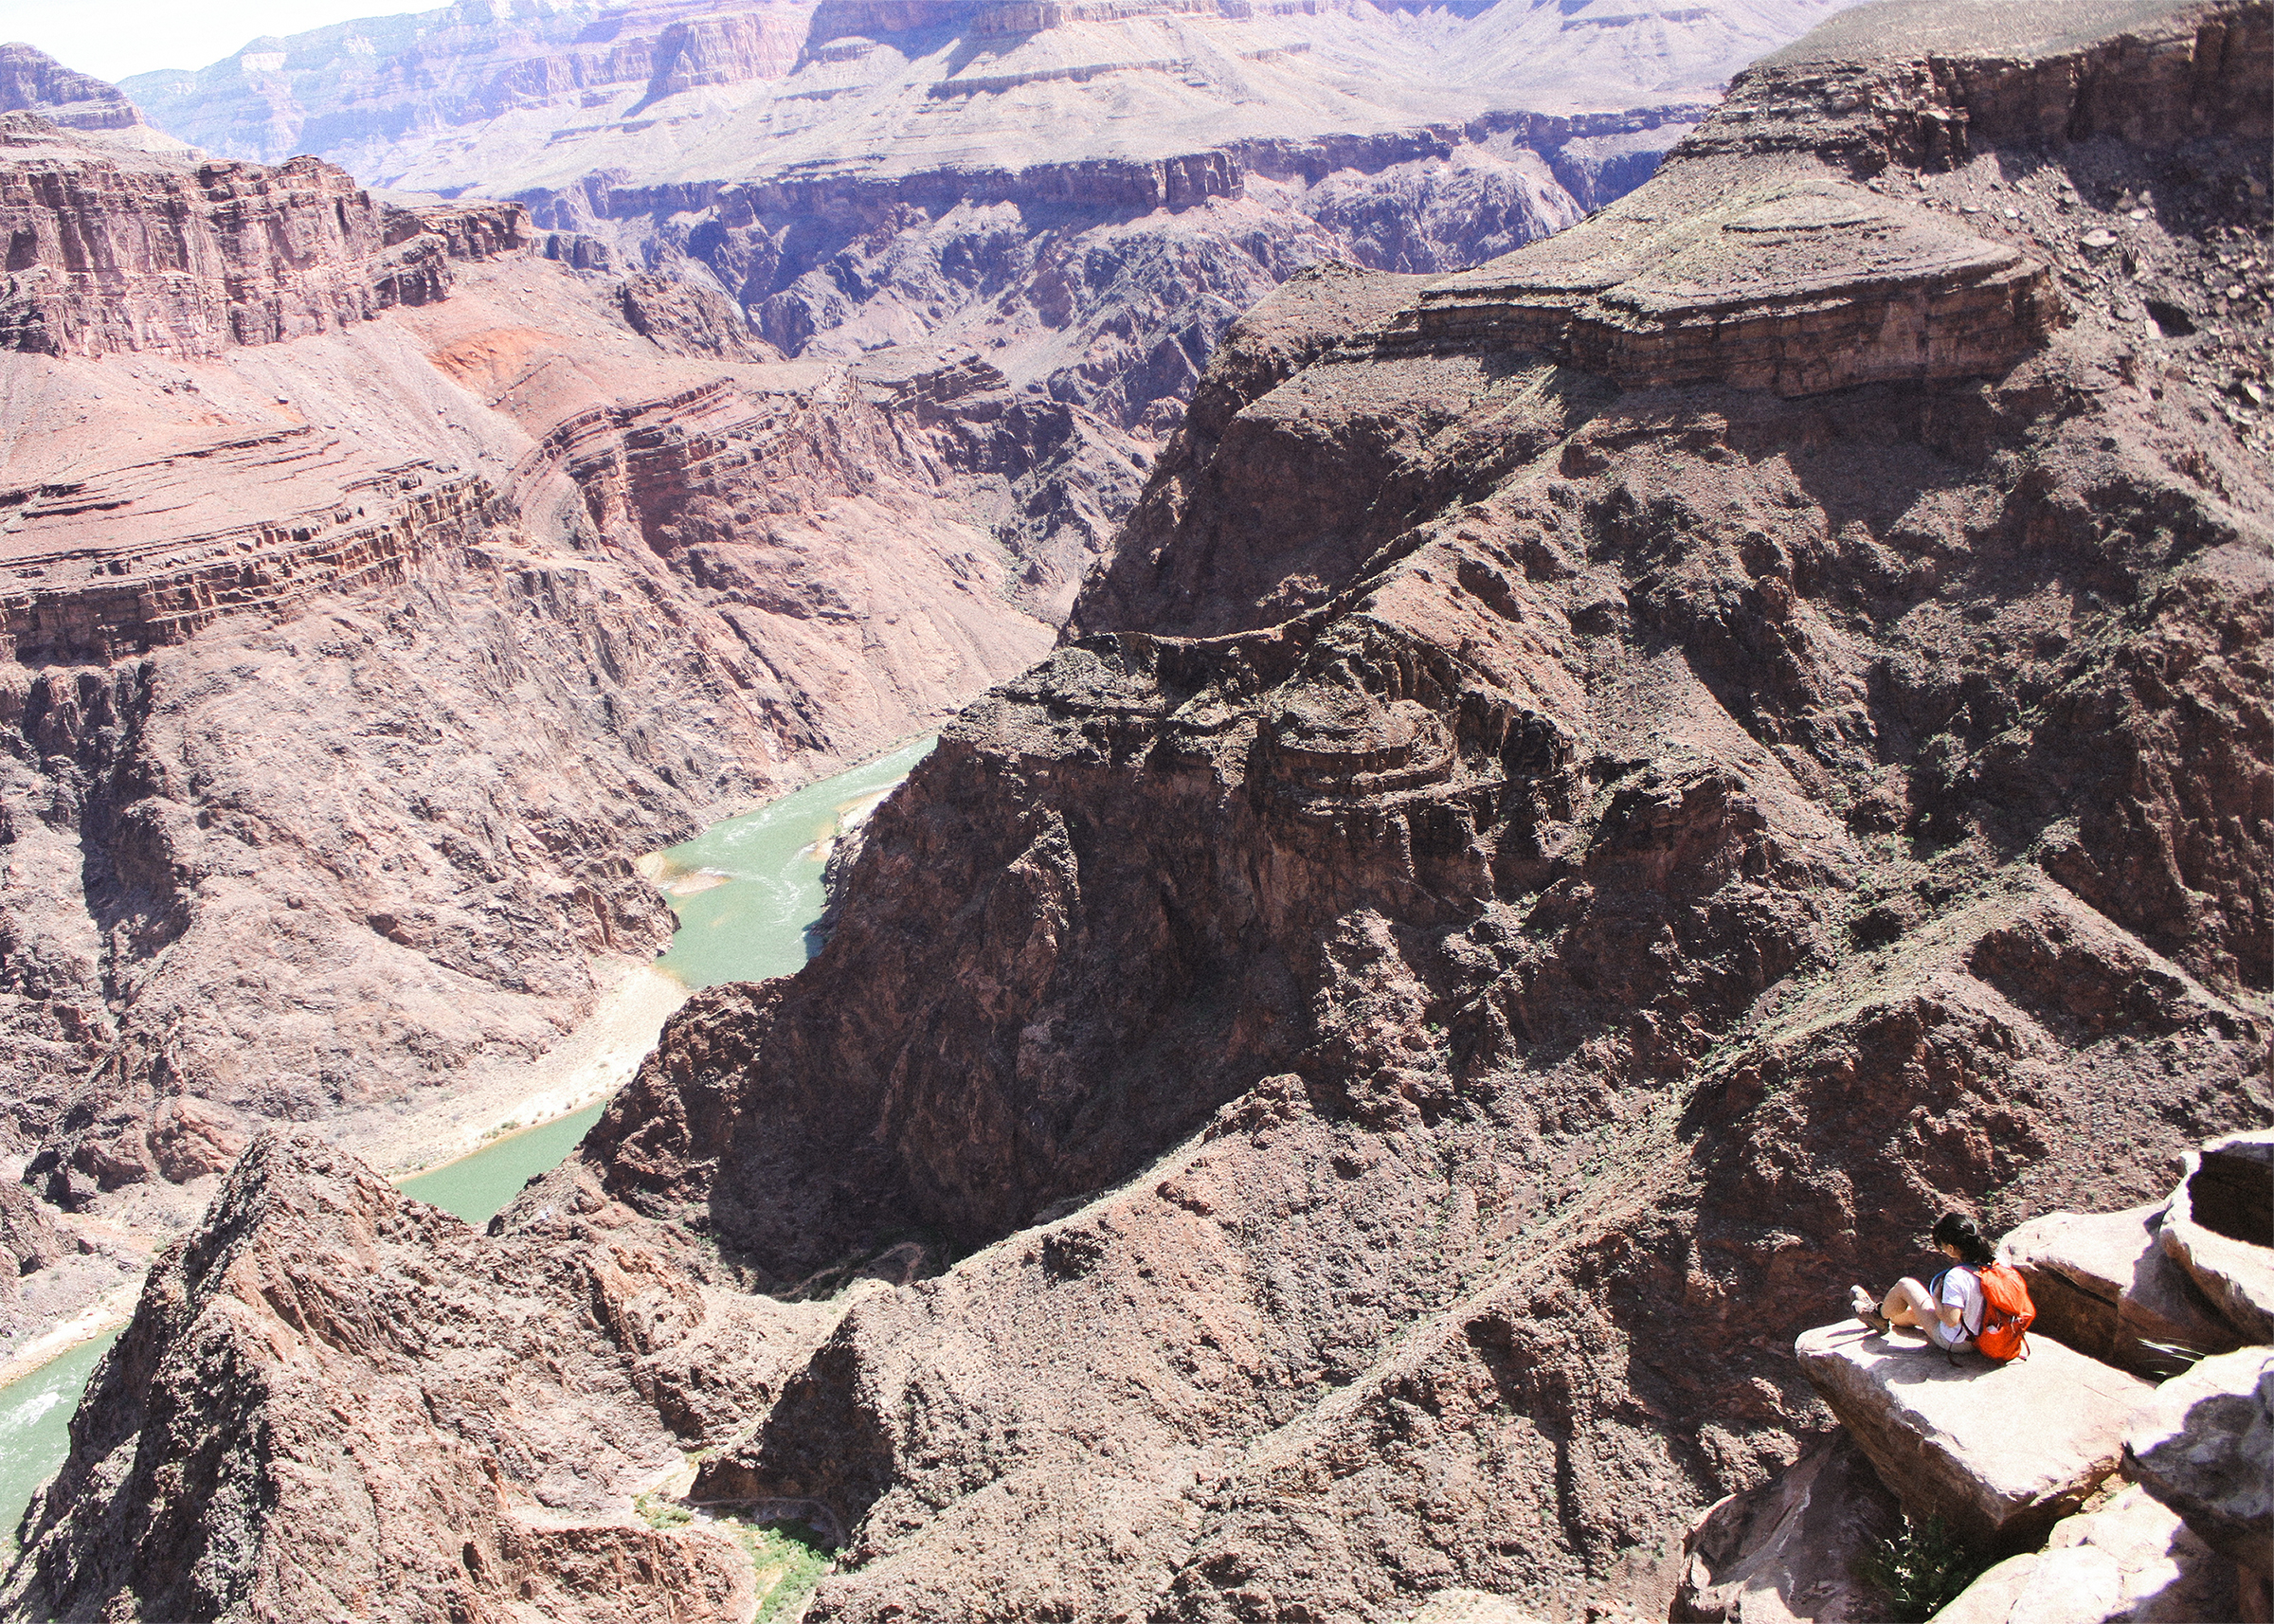 Jennifer sitting at Plateau Point with the Colorado River beneath her